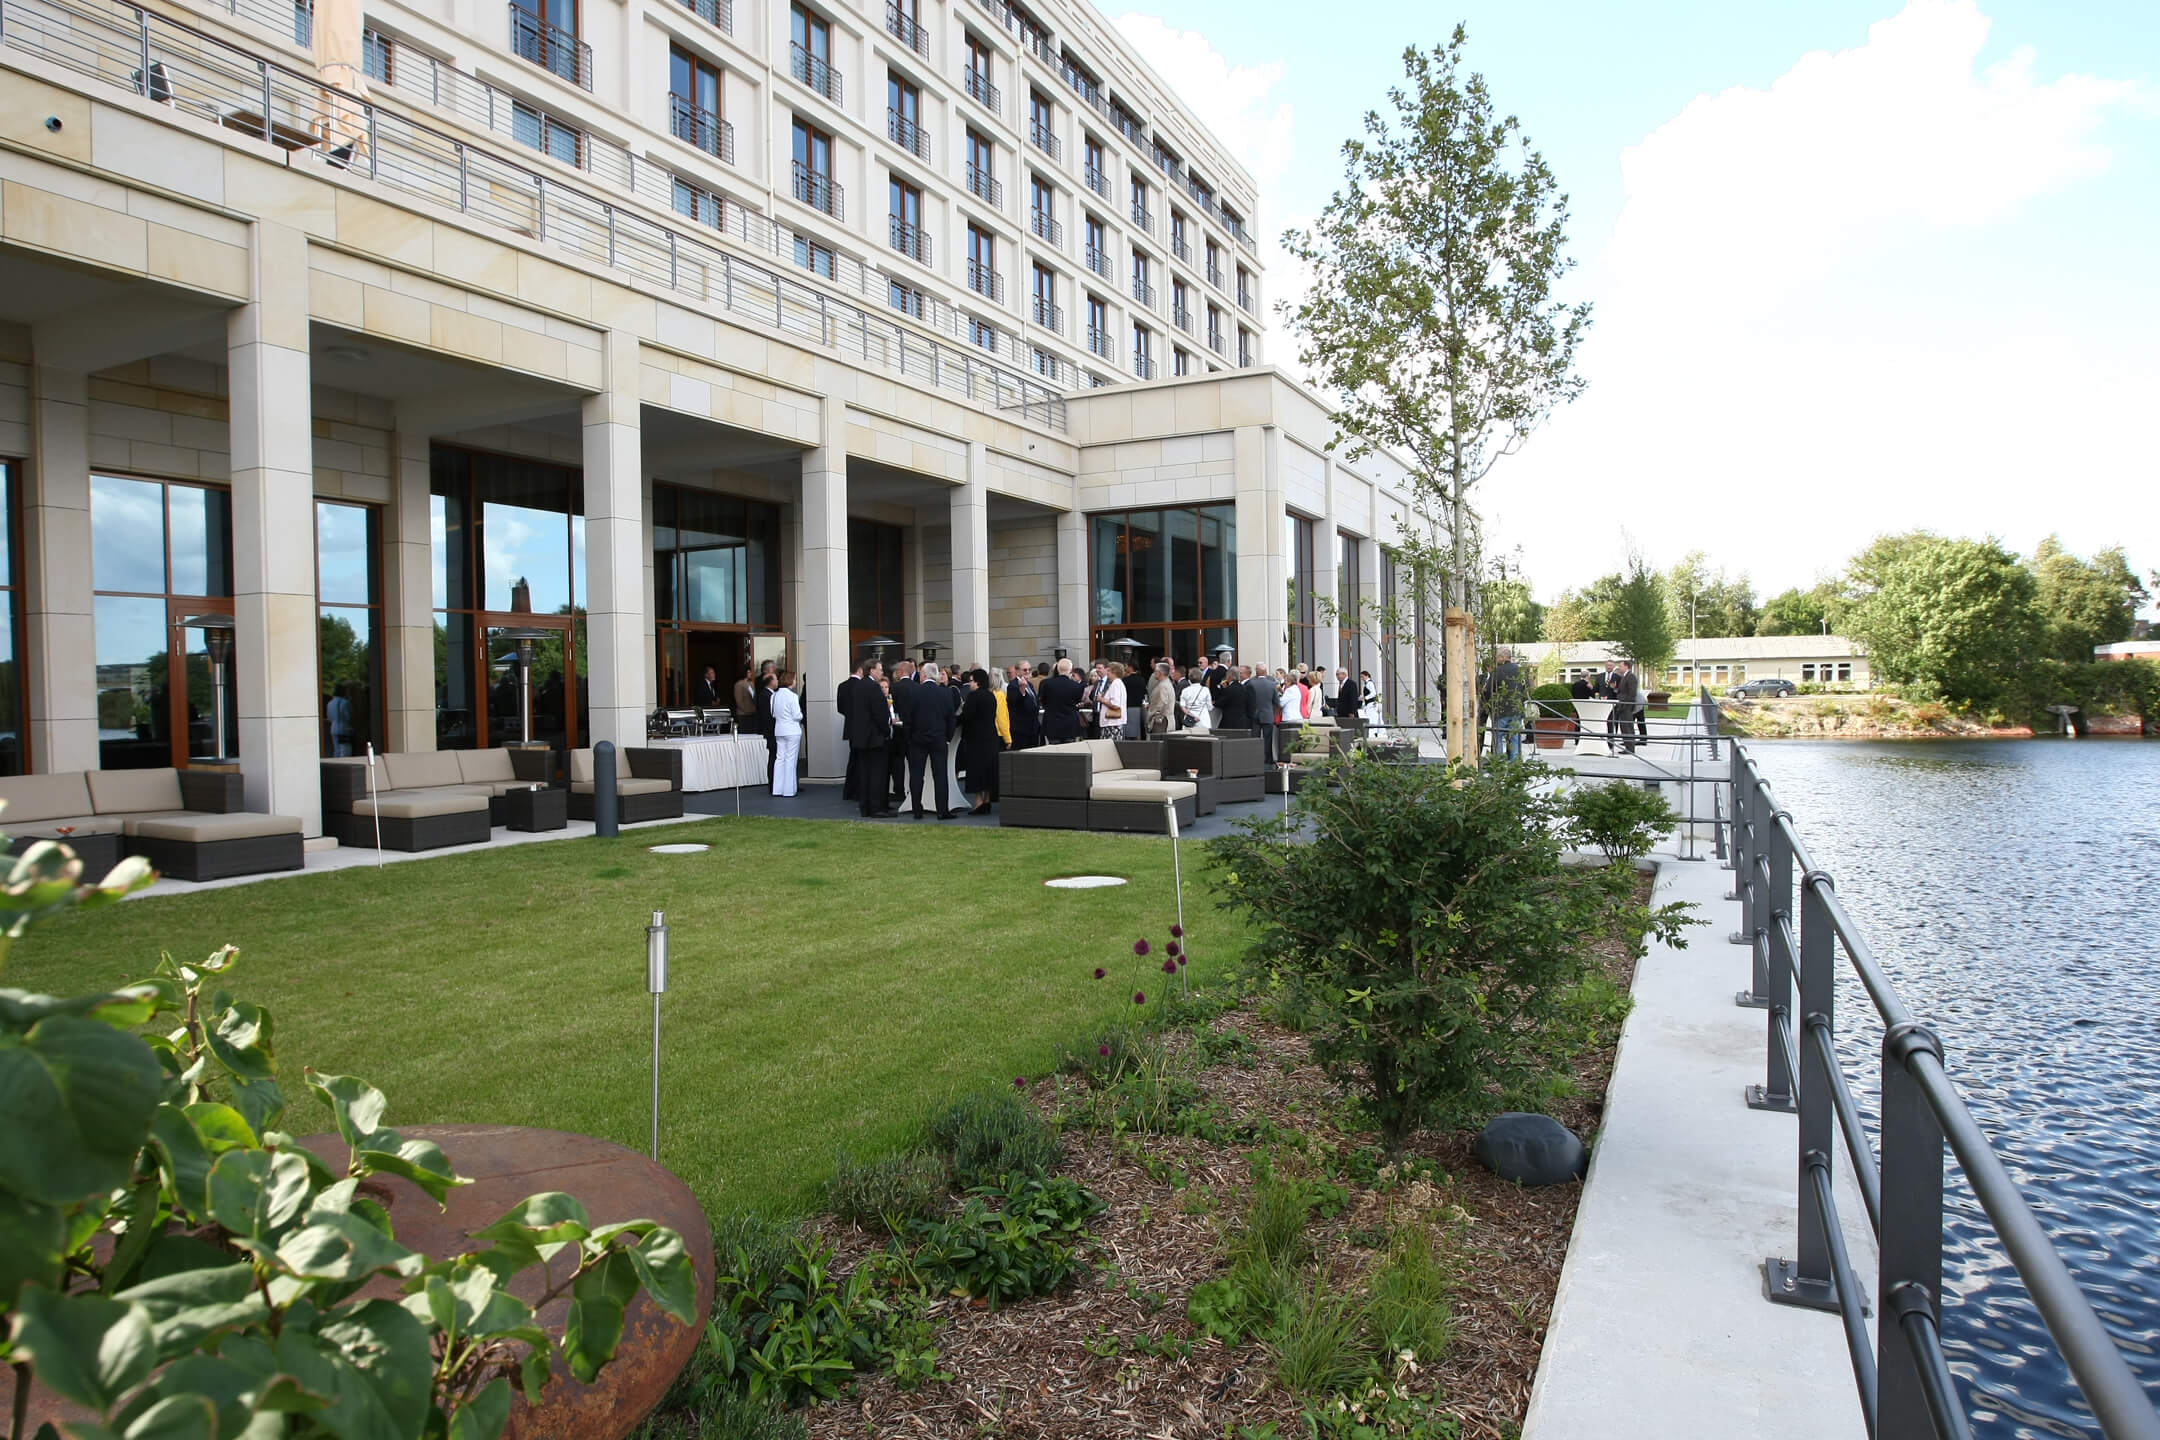 Reception on the hotel terrace │ ATLANTIC Hotel Wilhelmshaven